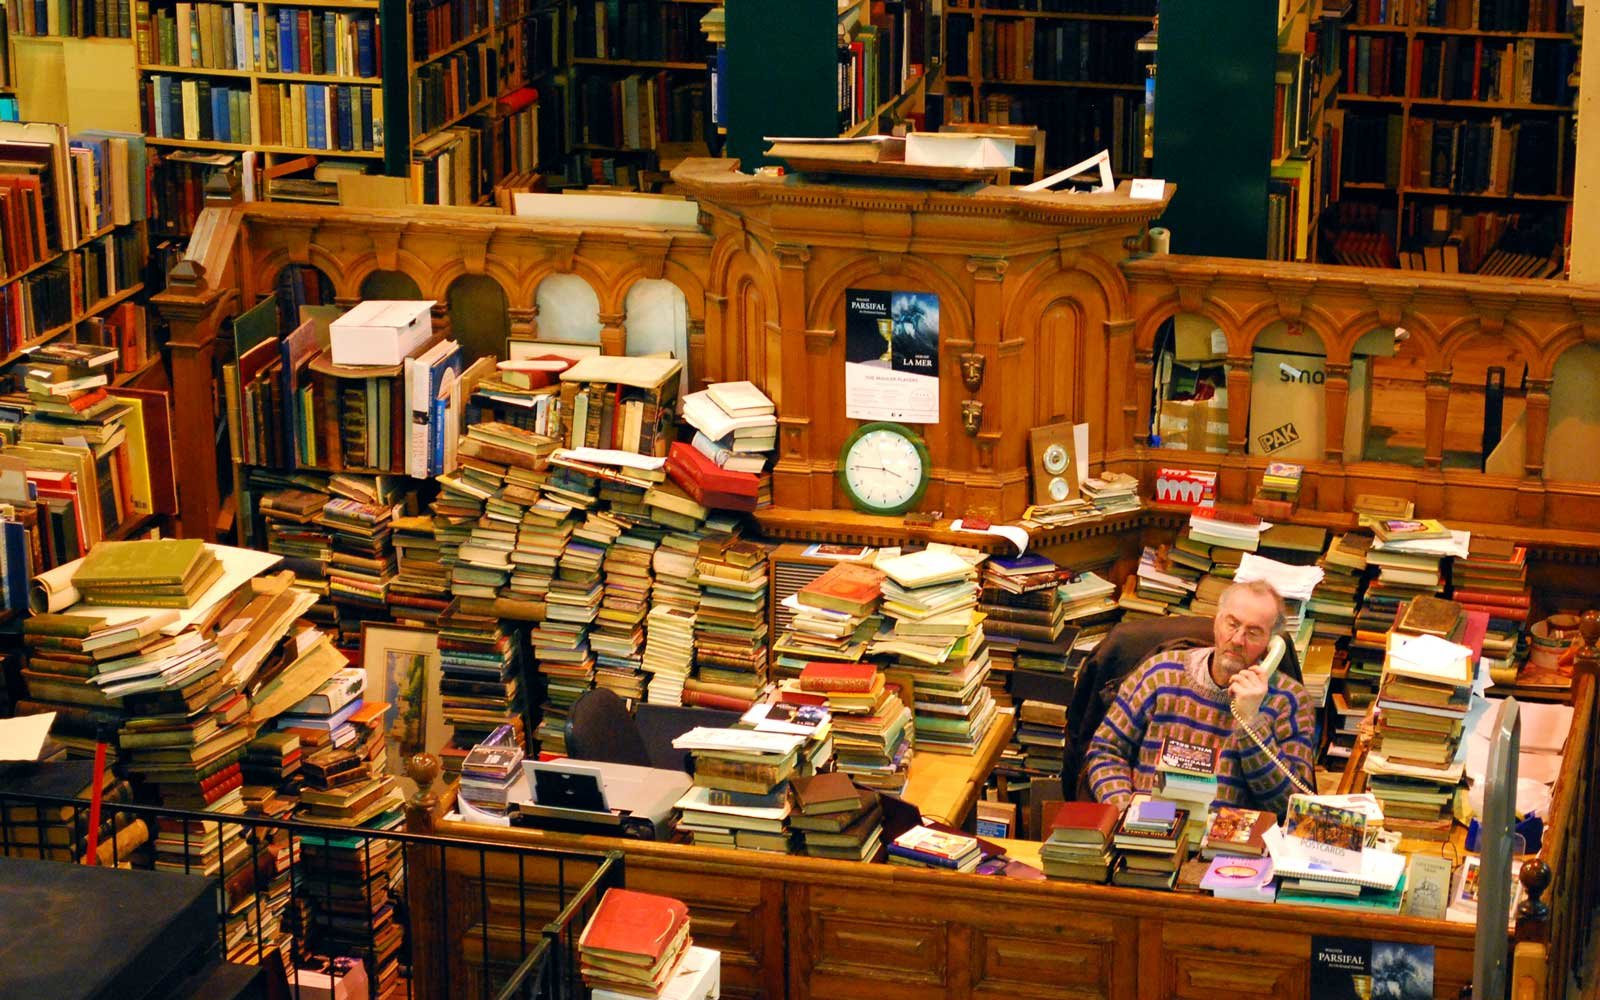 Leakey's Bookshop in Scotland